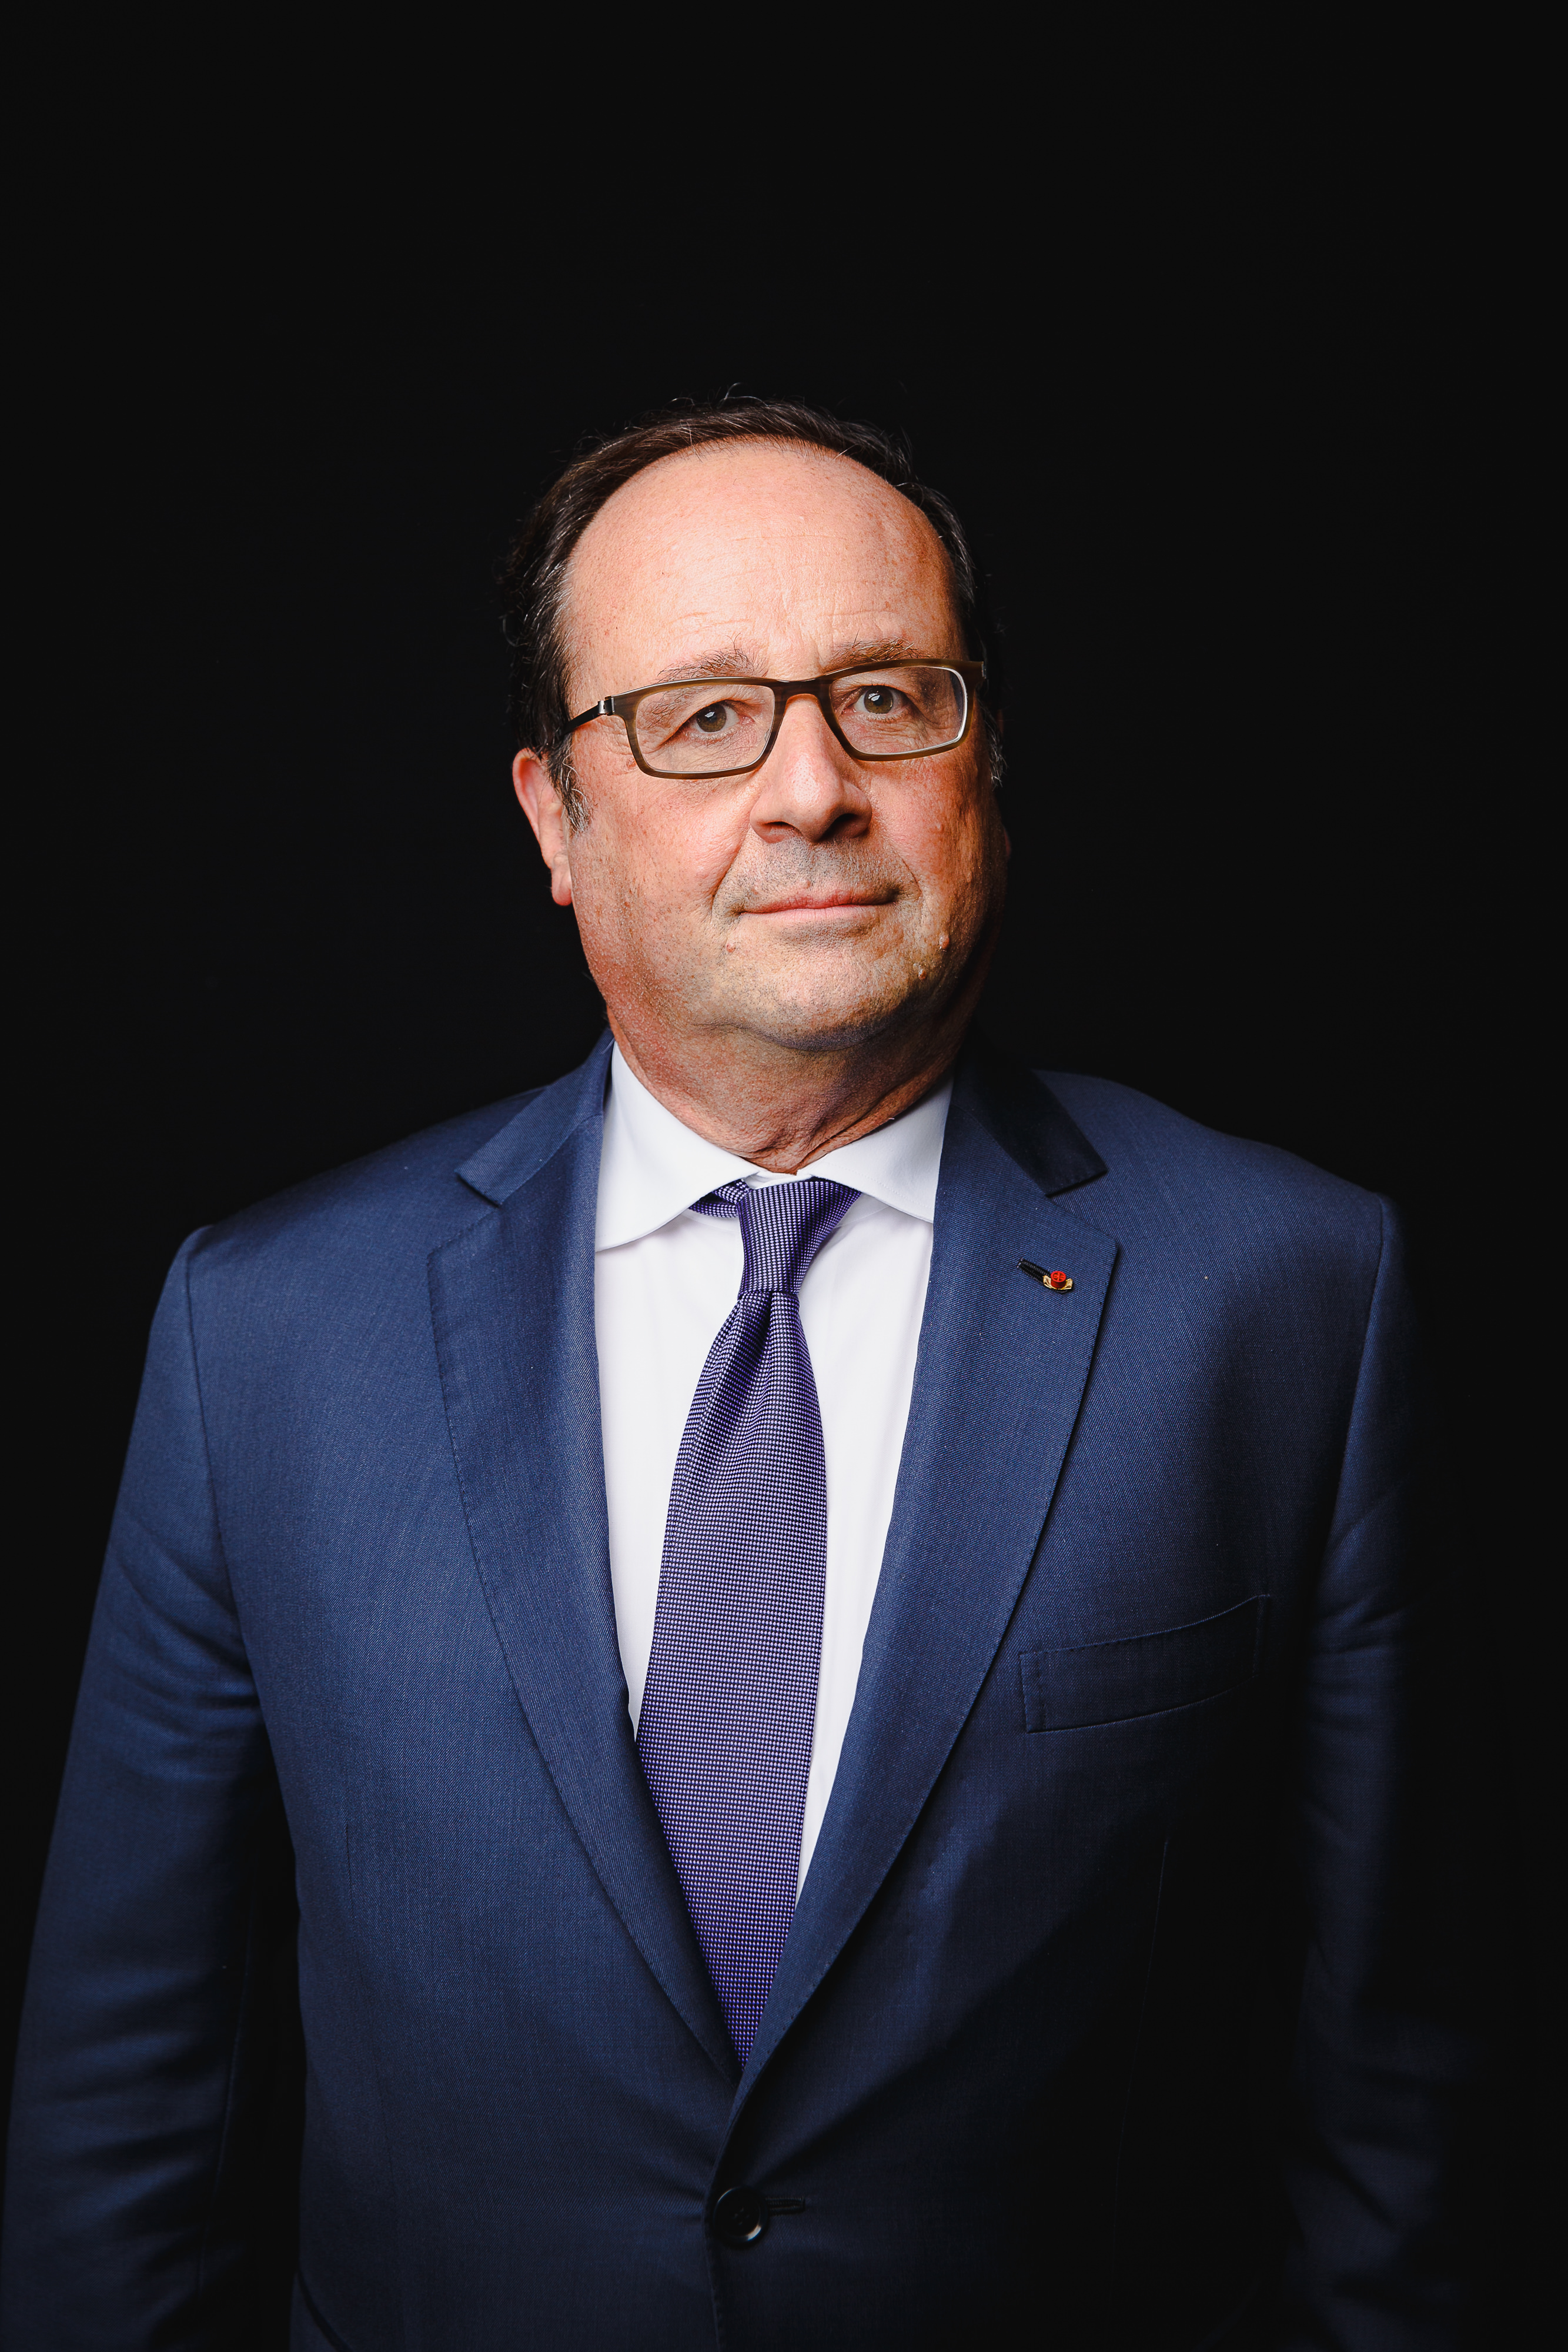 The 6-year old son of father Georges Gustave Hollande and mother Nicole Frédérique Marguerite Tribert François Hollande in 2018 photo. François Hollande earned a  million dollar salary - leaving the net worth at 2 million in 2018